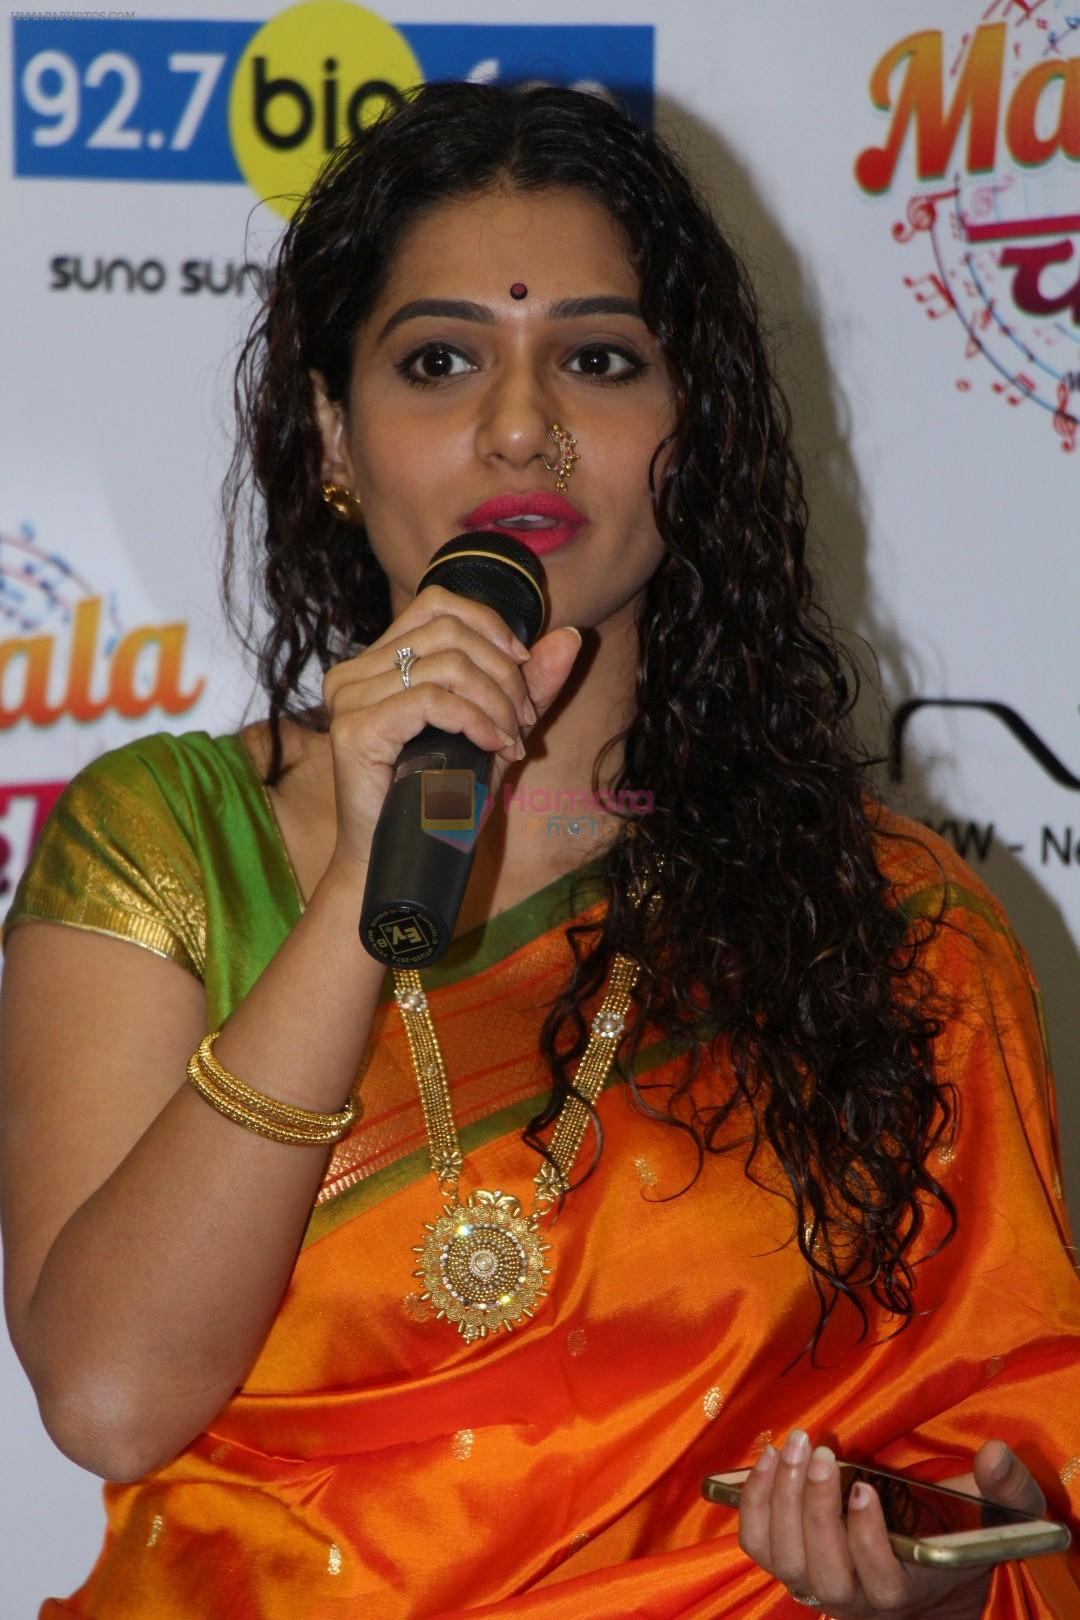 urmila kanitkar measurements